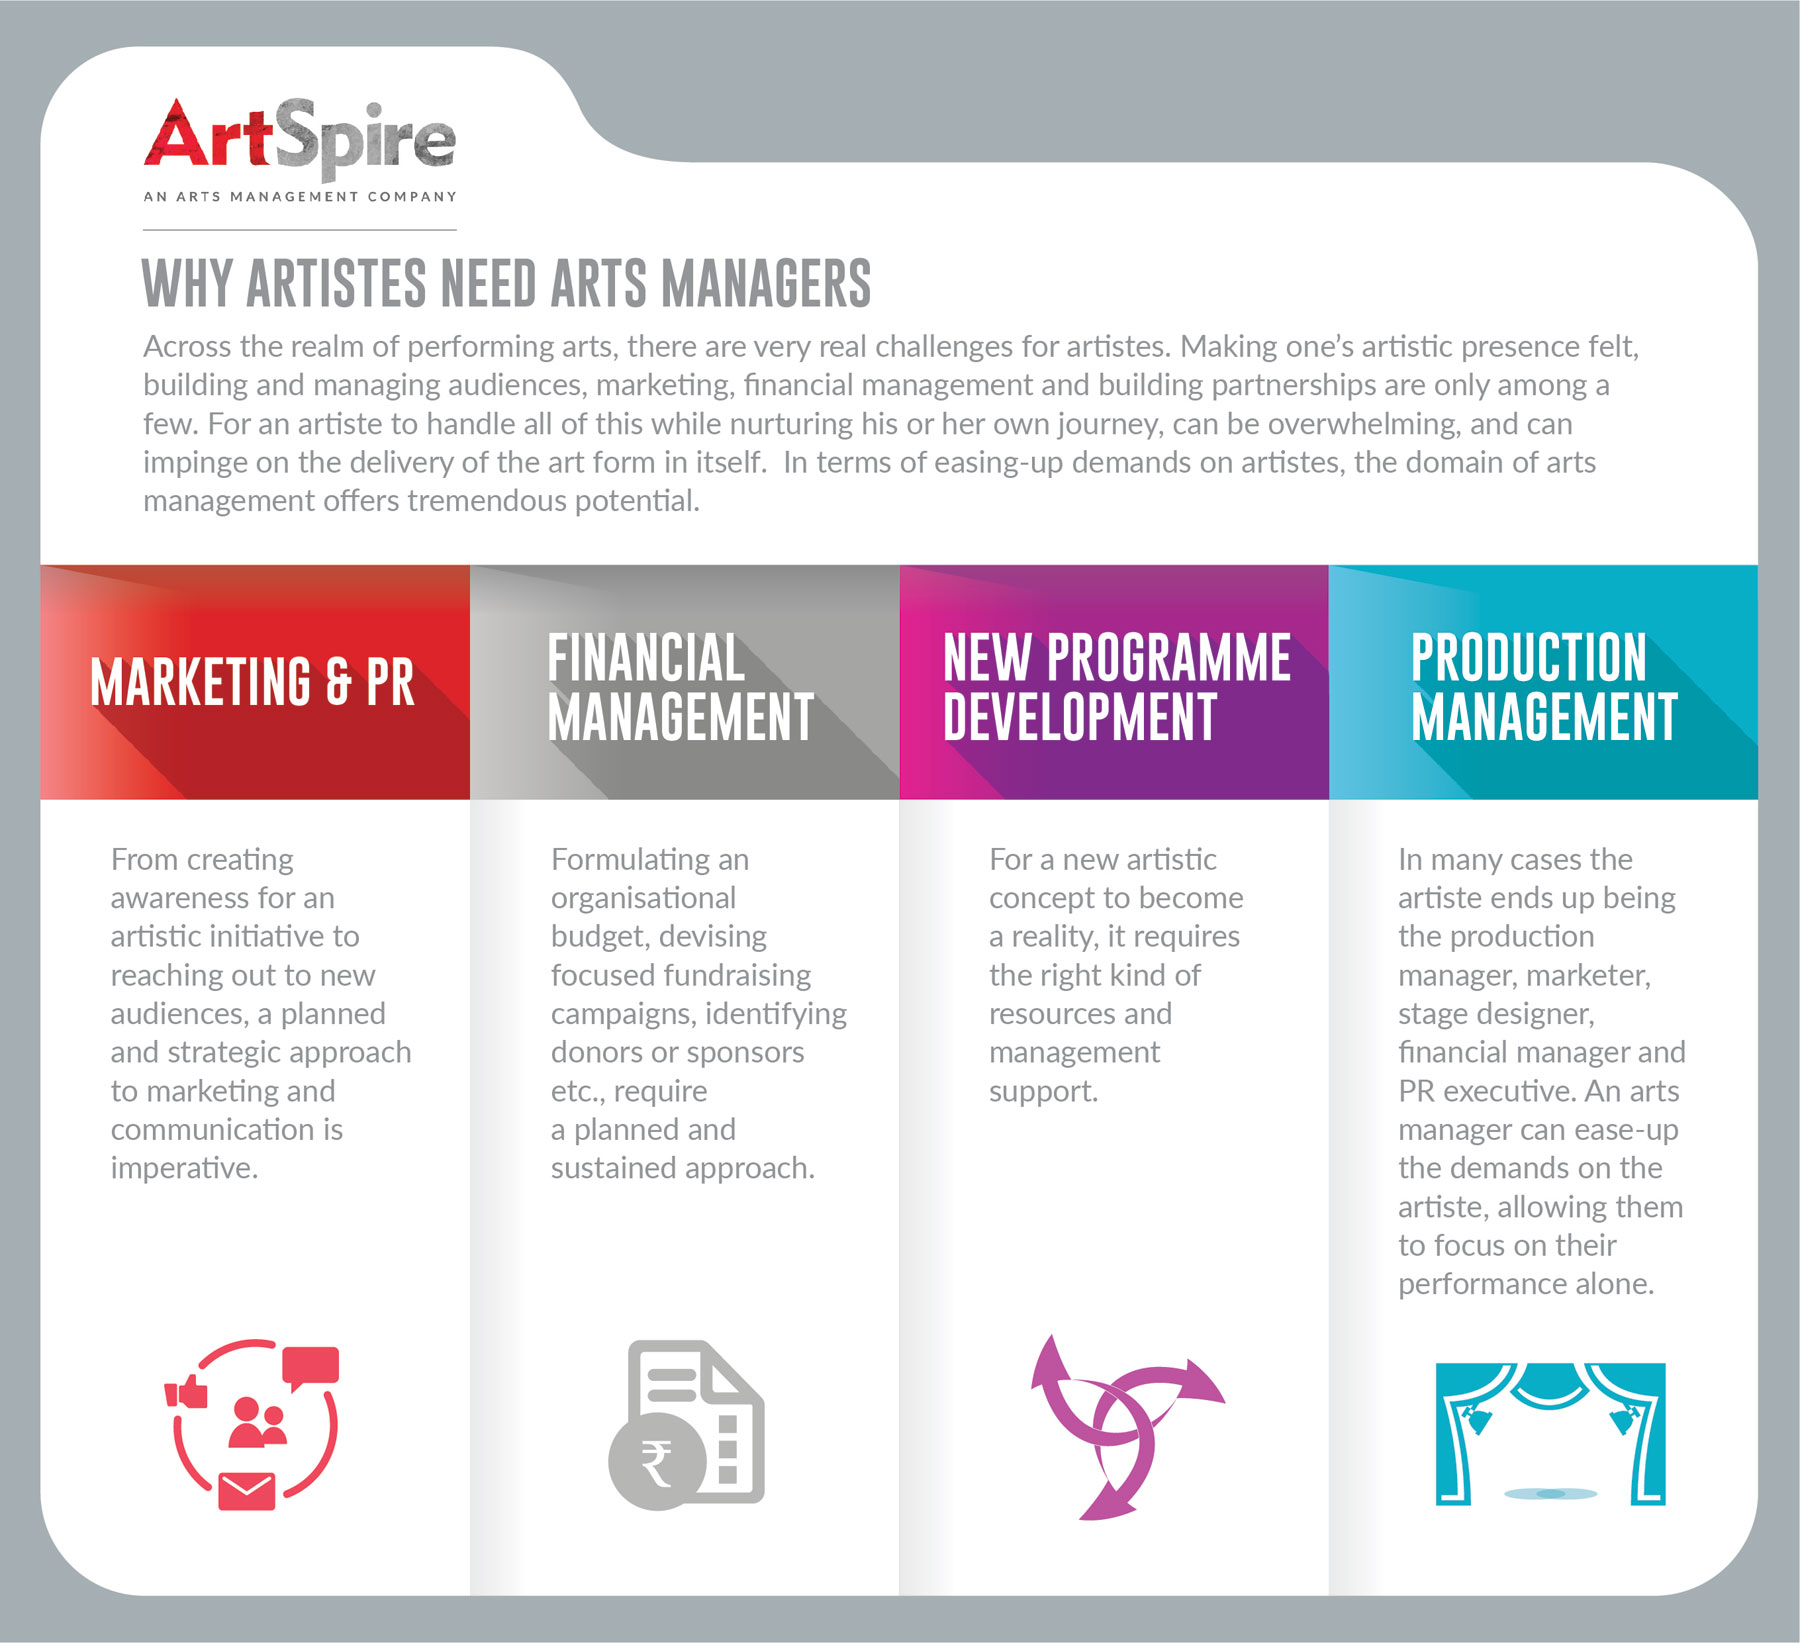 ArtSpire - The Art of Managing Your Art | An Article for Art Practitioners